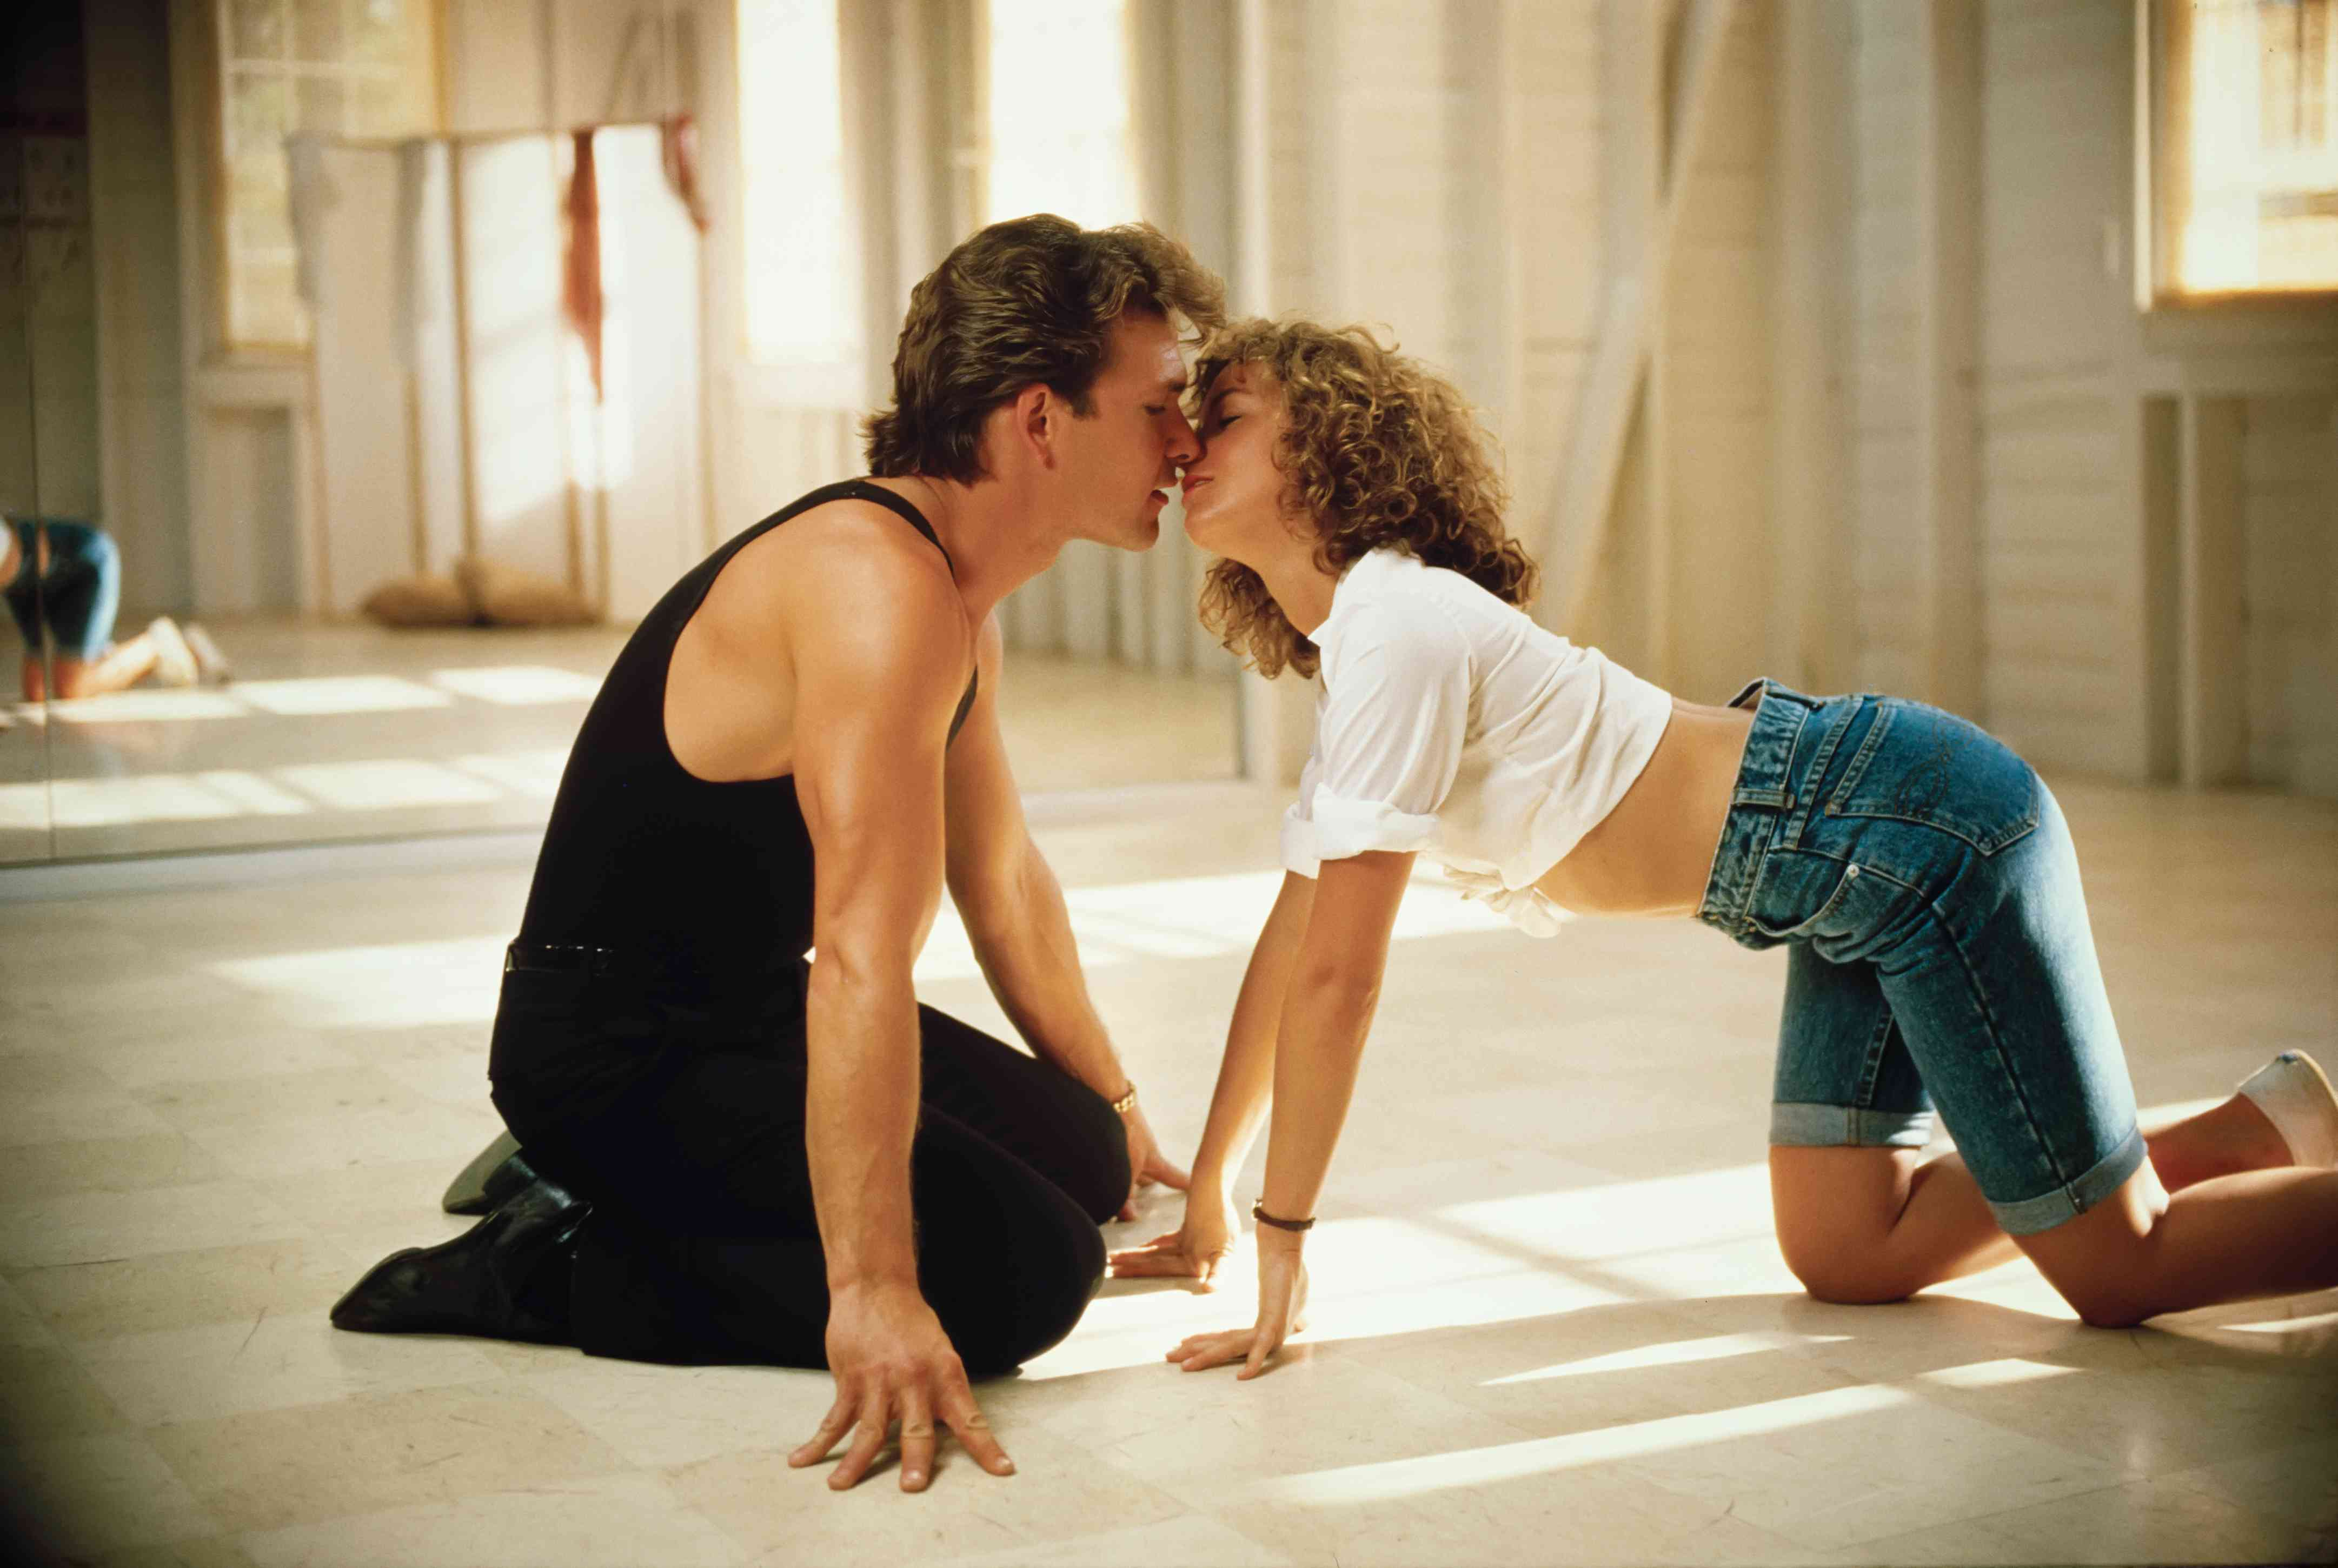 Patrick Swayze and Jennifer gray about to kiss in the dance studio in